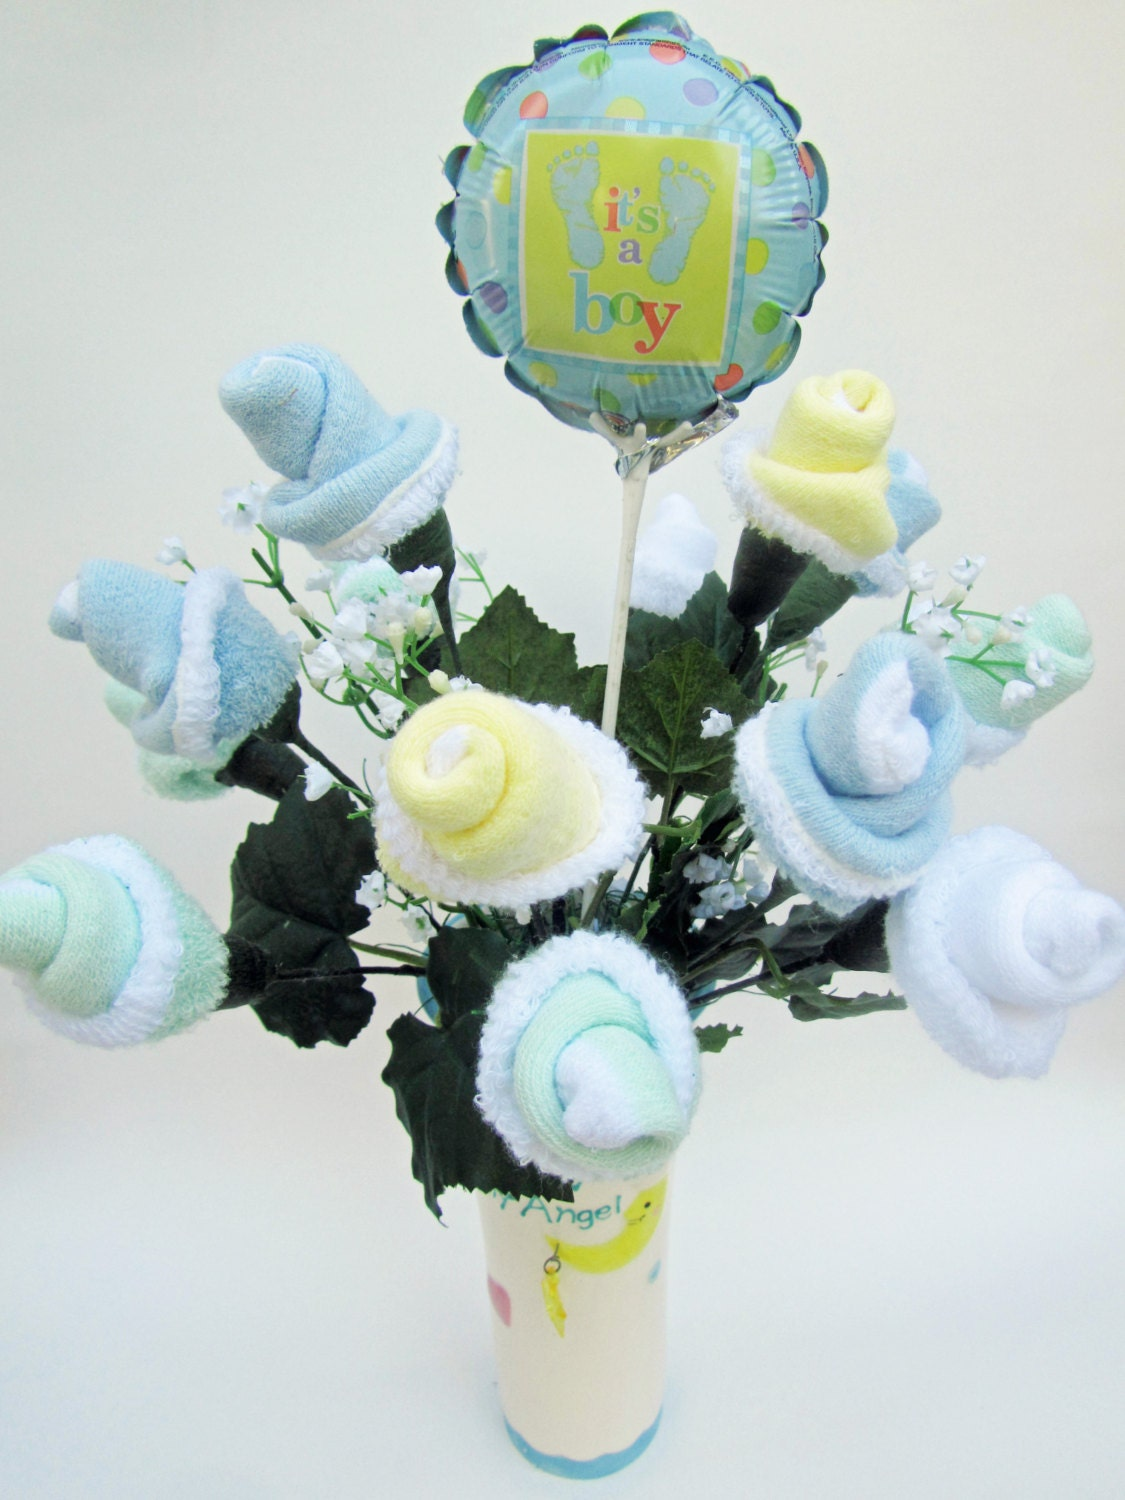 New Baby Floral Gift Ideas : Baby shower centerpiece boy gift flower by